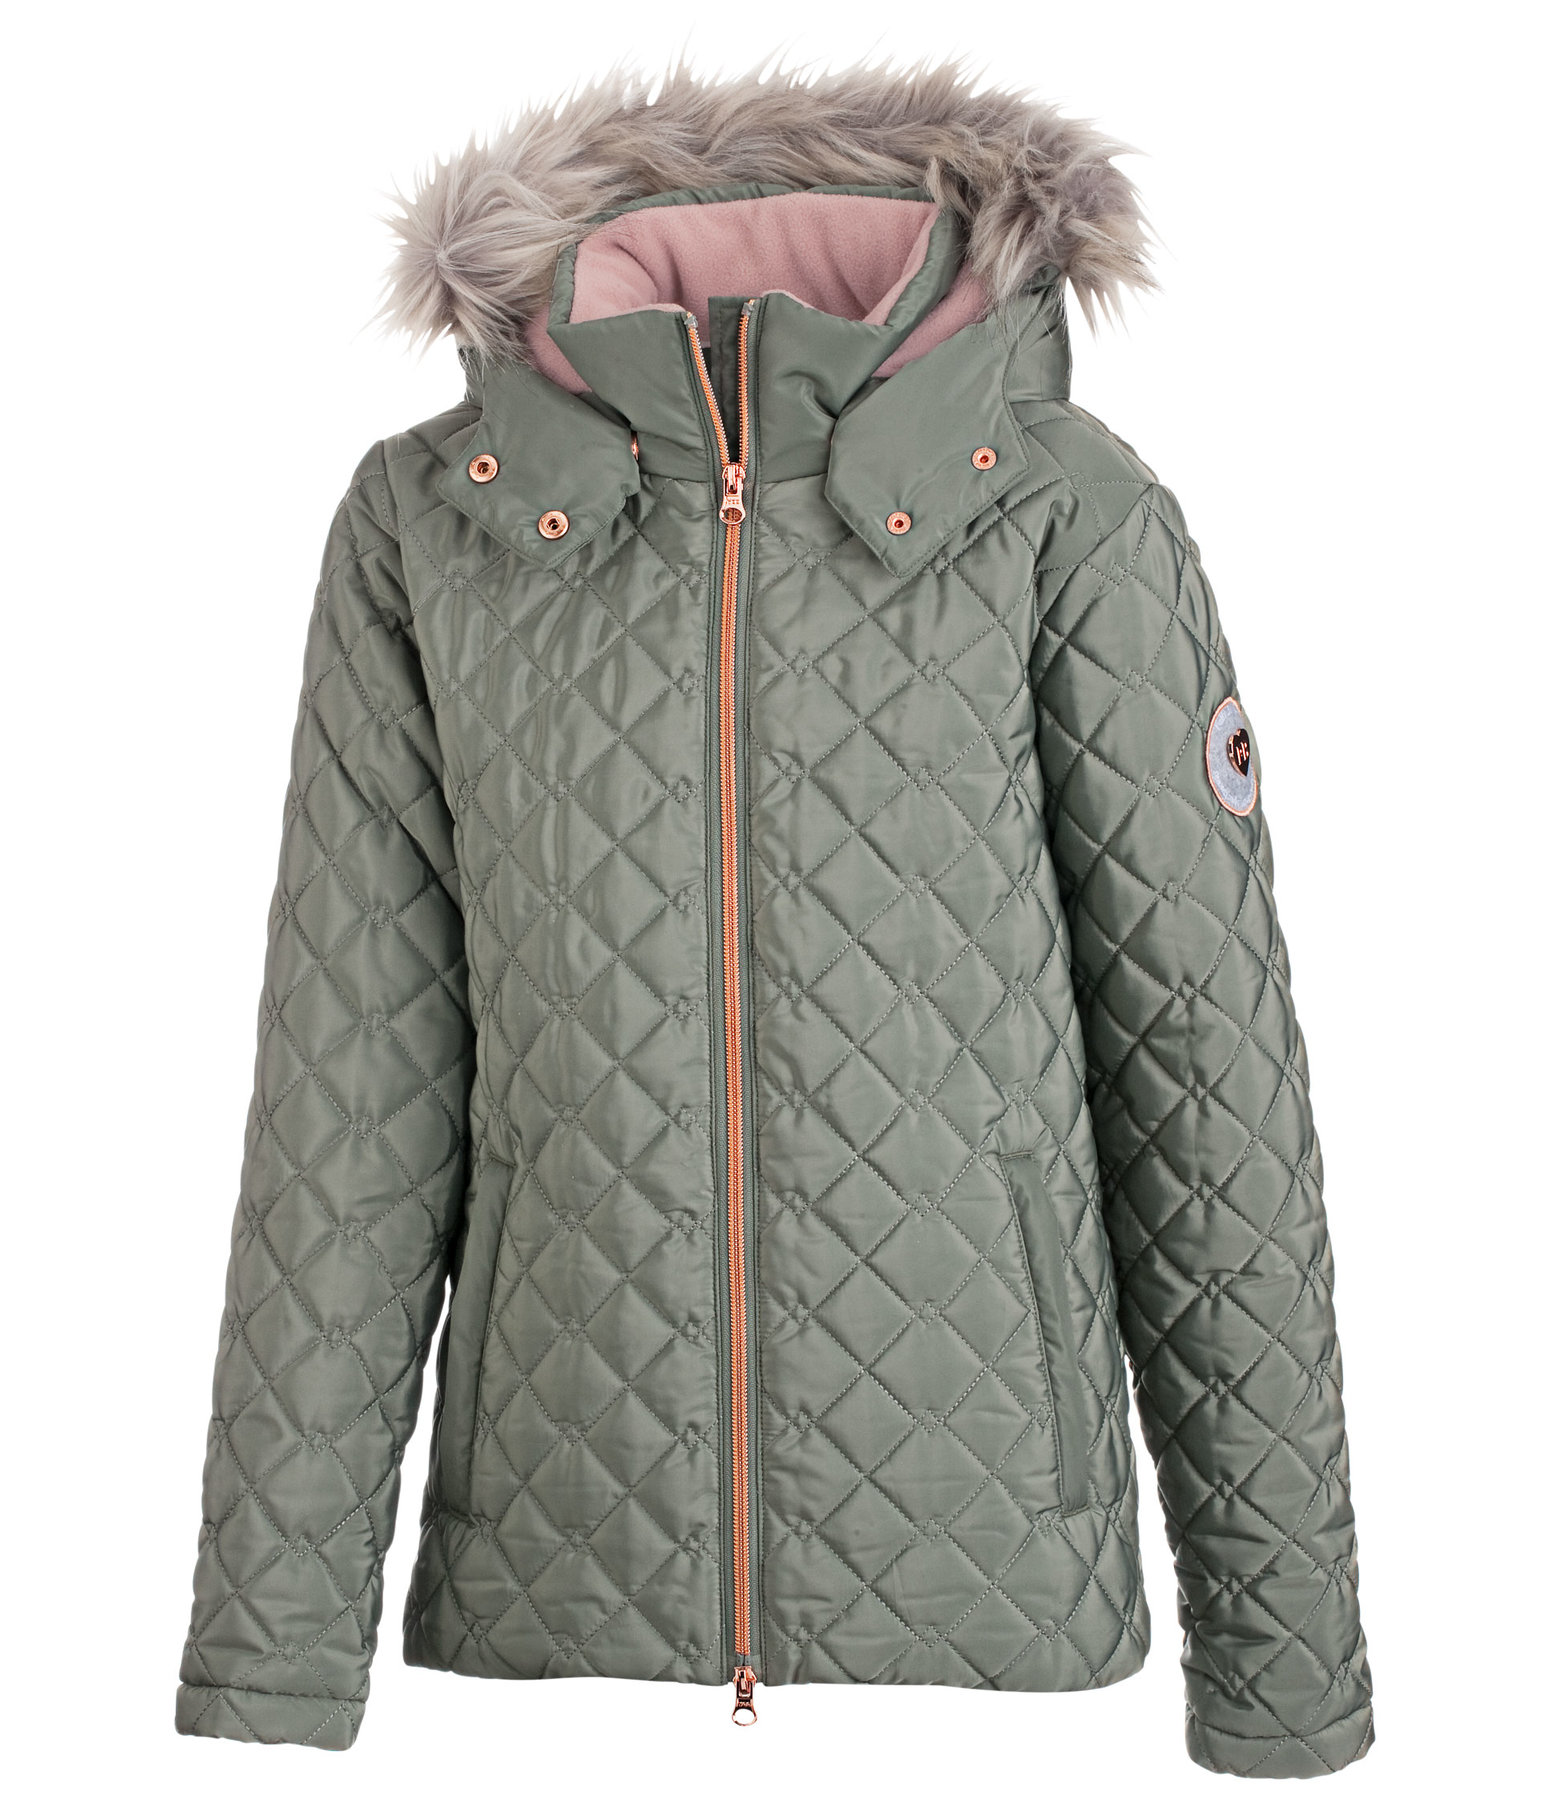 Kinder-Winter-Steppjacke Malina